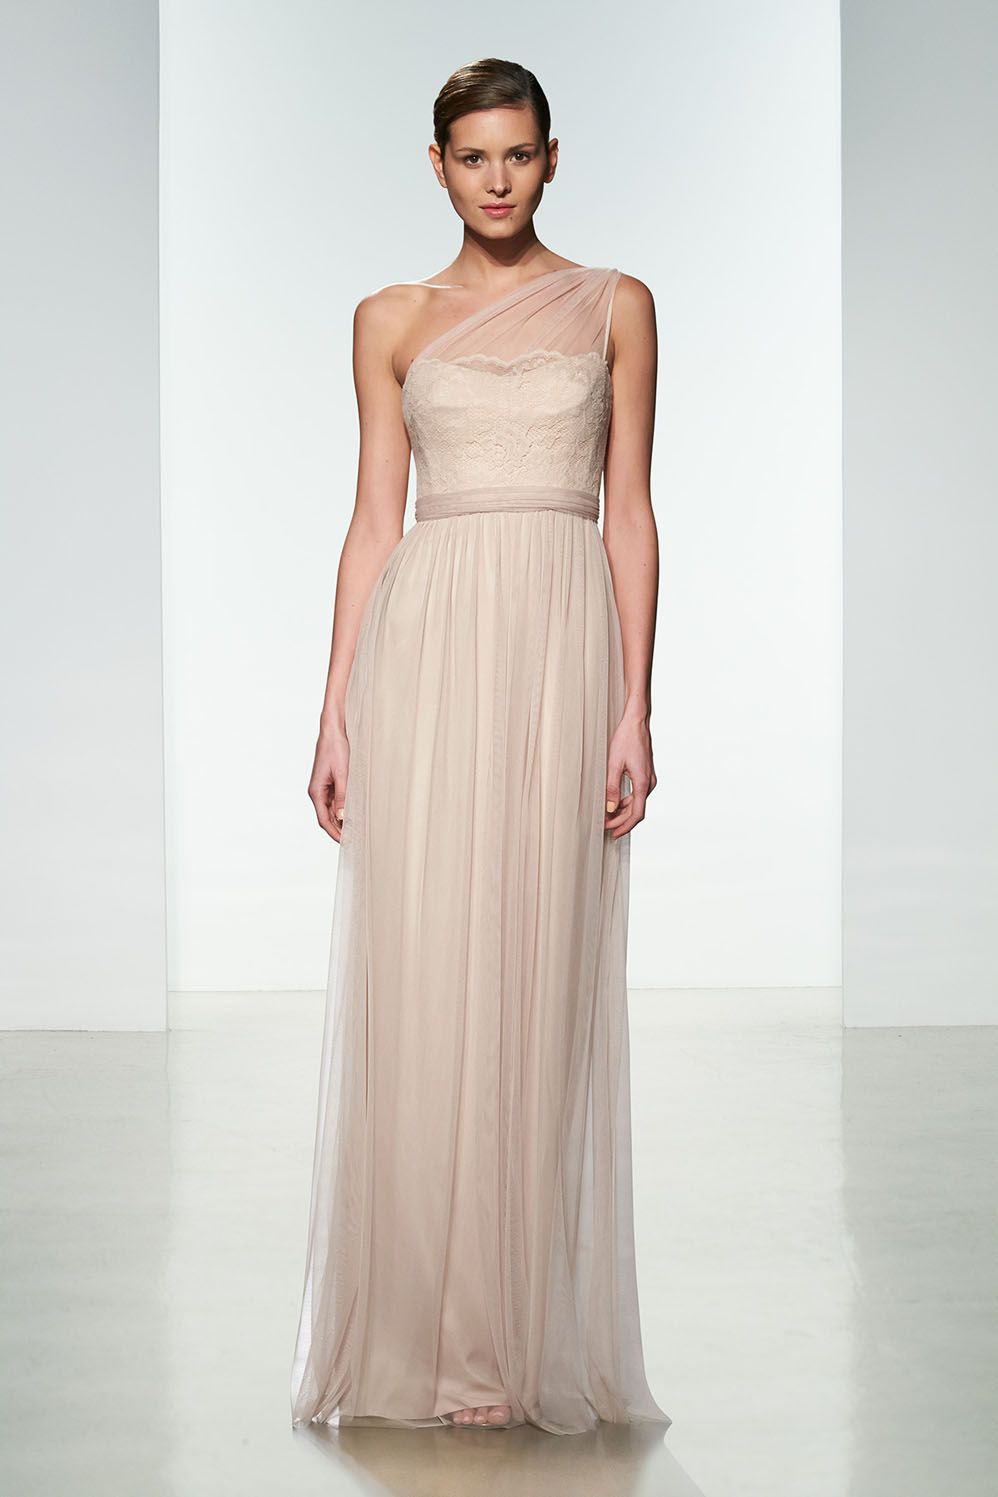 One shoulder lace bodice blush tulle long bridesmaid dress with